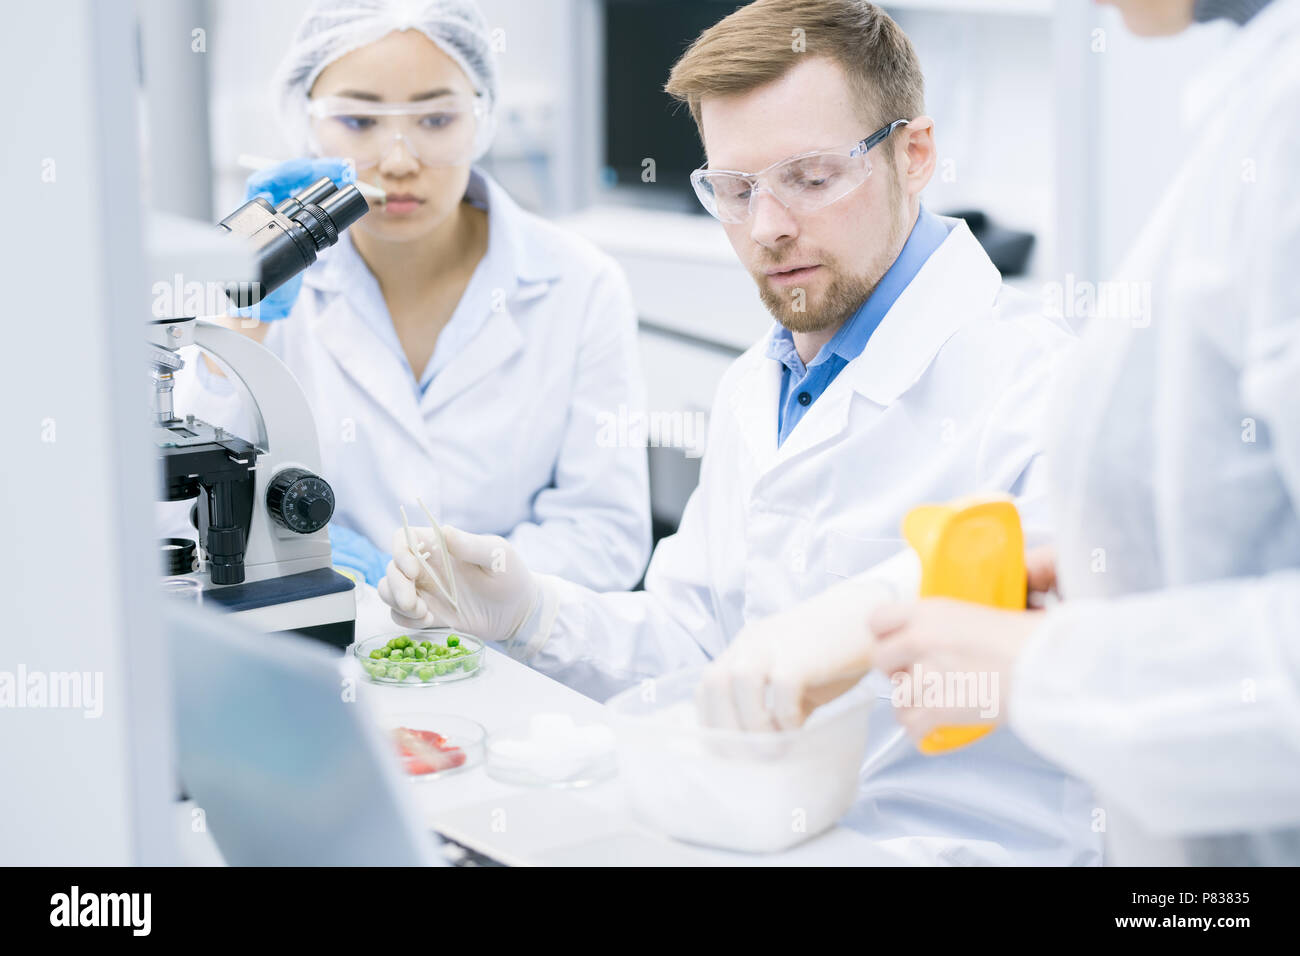 Team of Scientists Doing Research in Laboratory - Stock Image